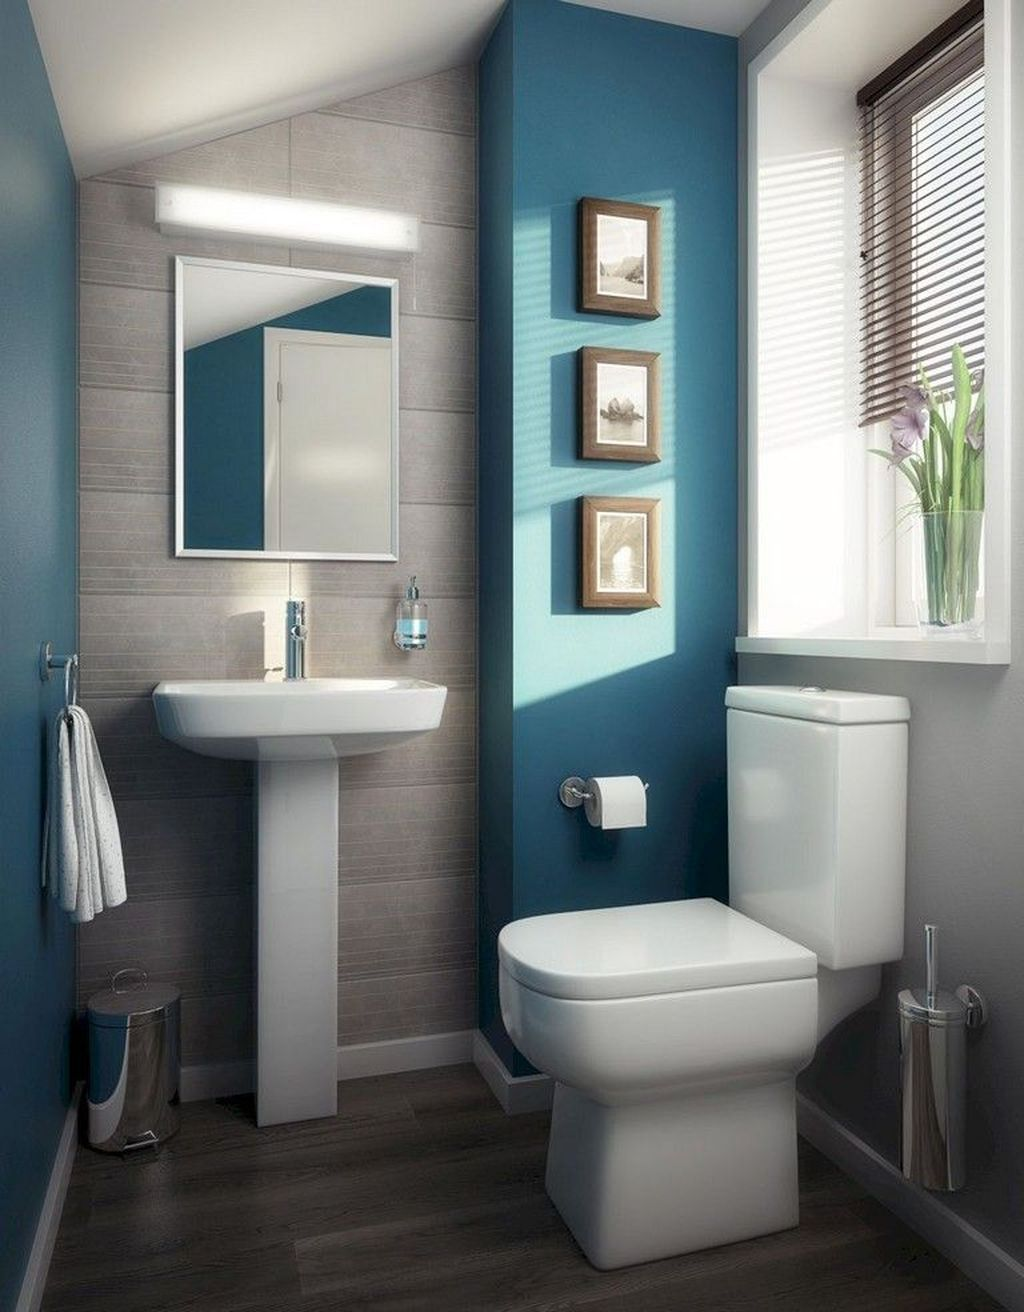 35 Most Popular Bathroom Color Design Ideas The Bathroom Is One Of The Most Used Rooms At H In 2020 Bathroom Interior Design Simple Bathroom Bathroom Remodel Designs